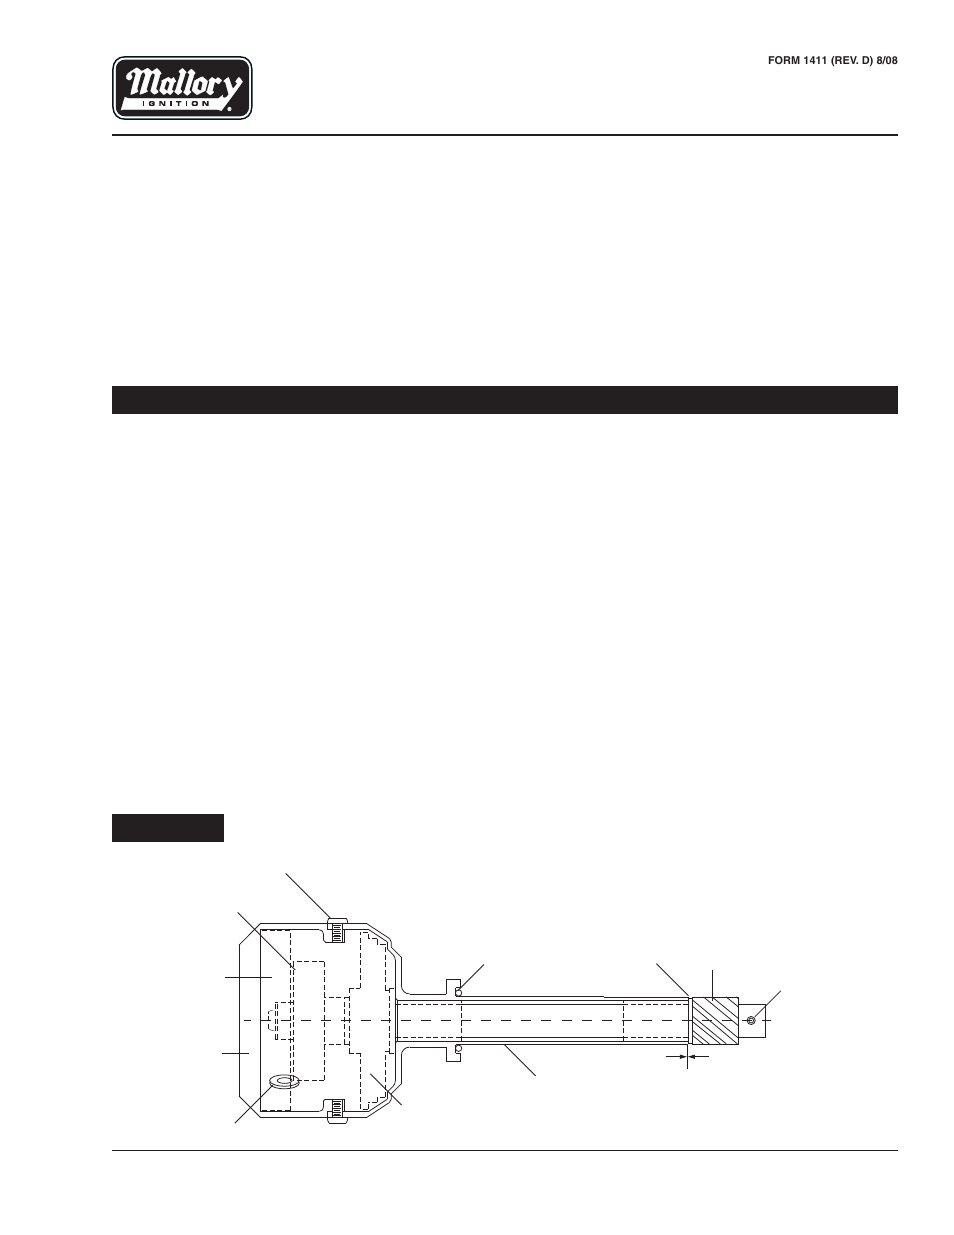 Wiring Diagram Additionally Mallory Unilite Wiring Diagram On 1966